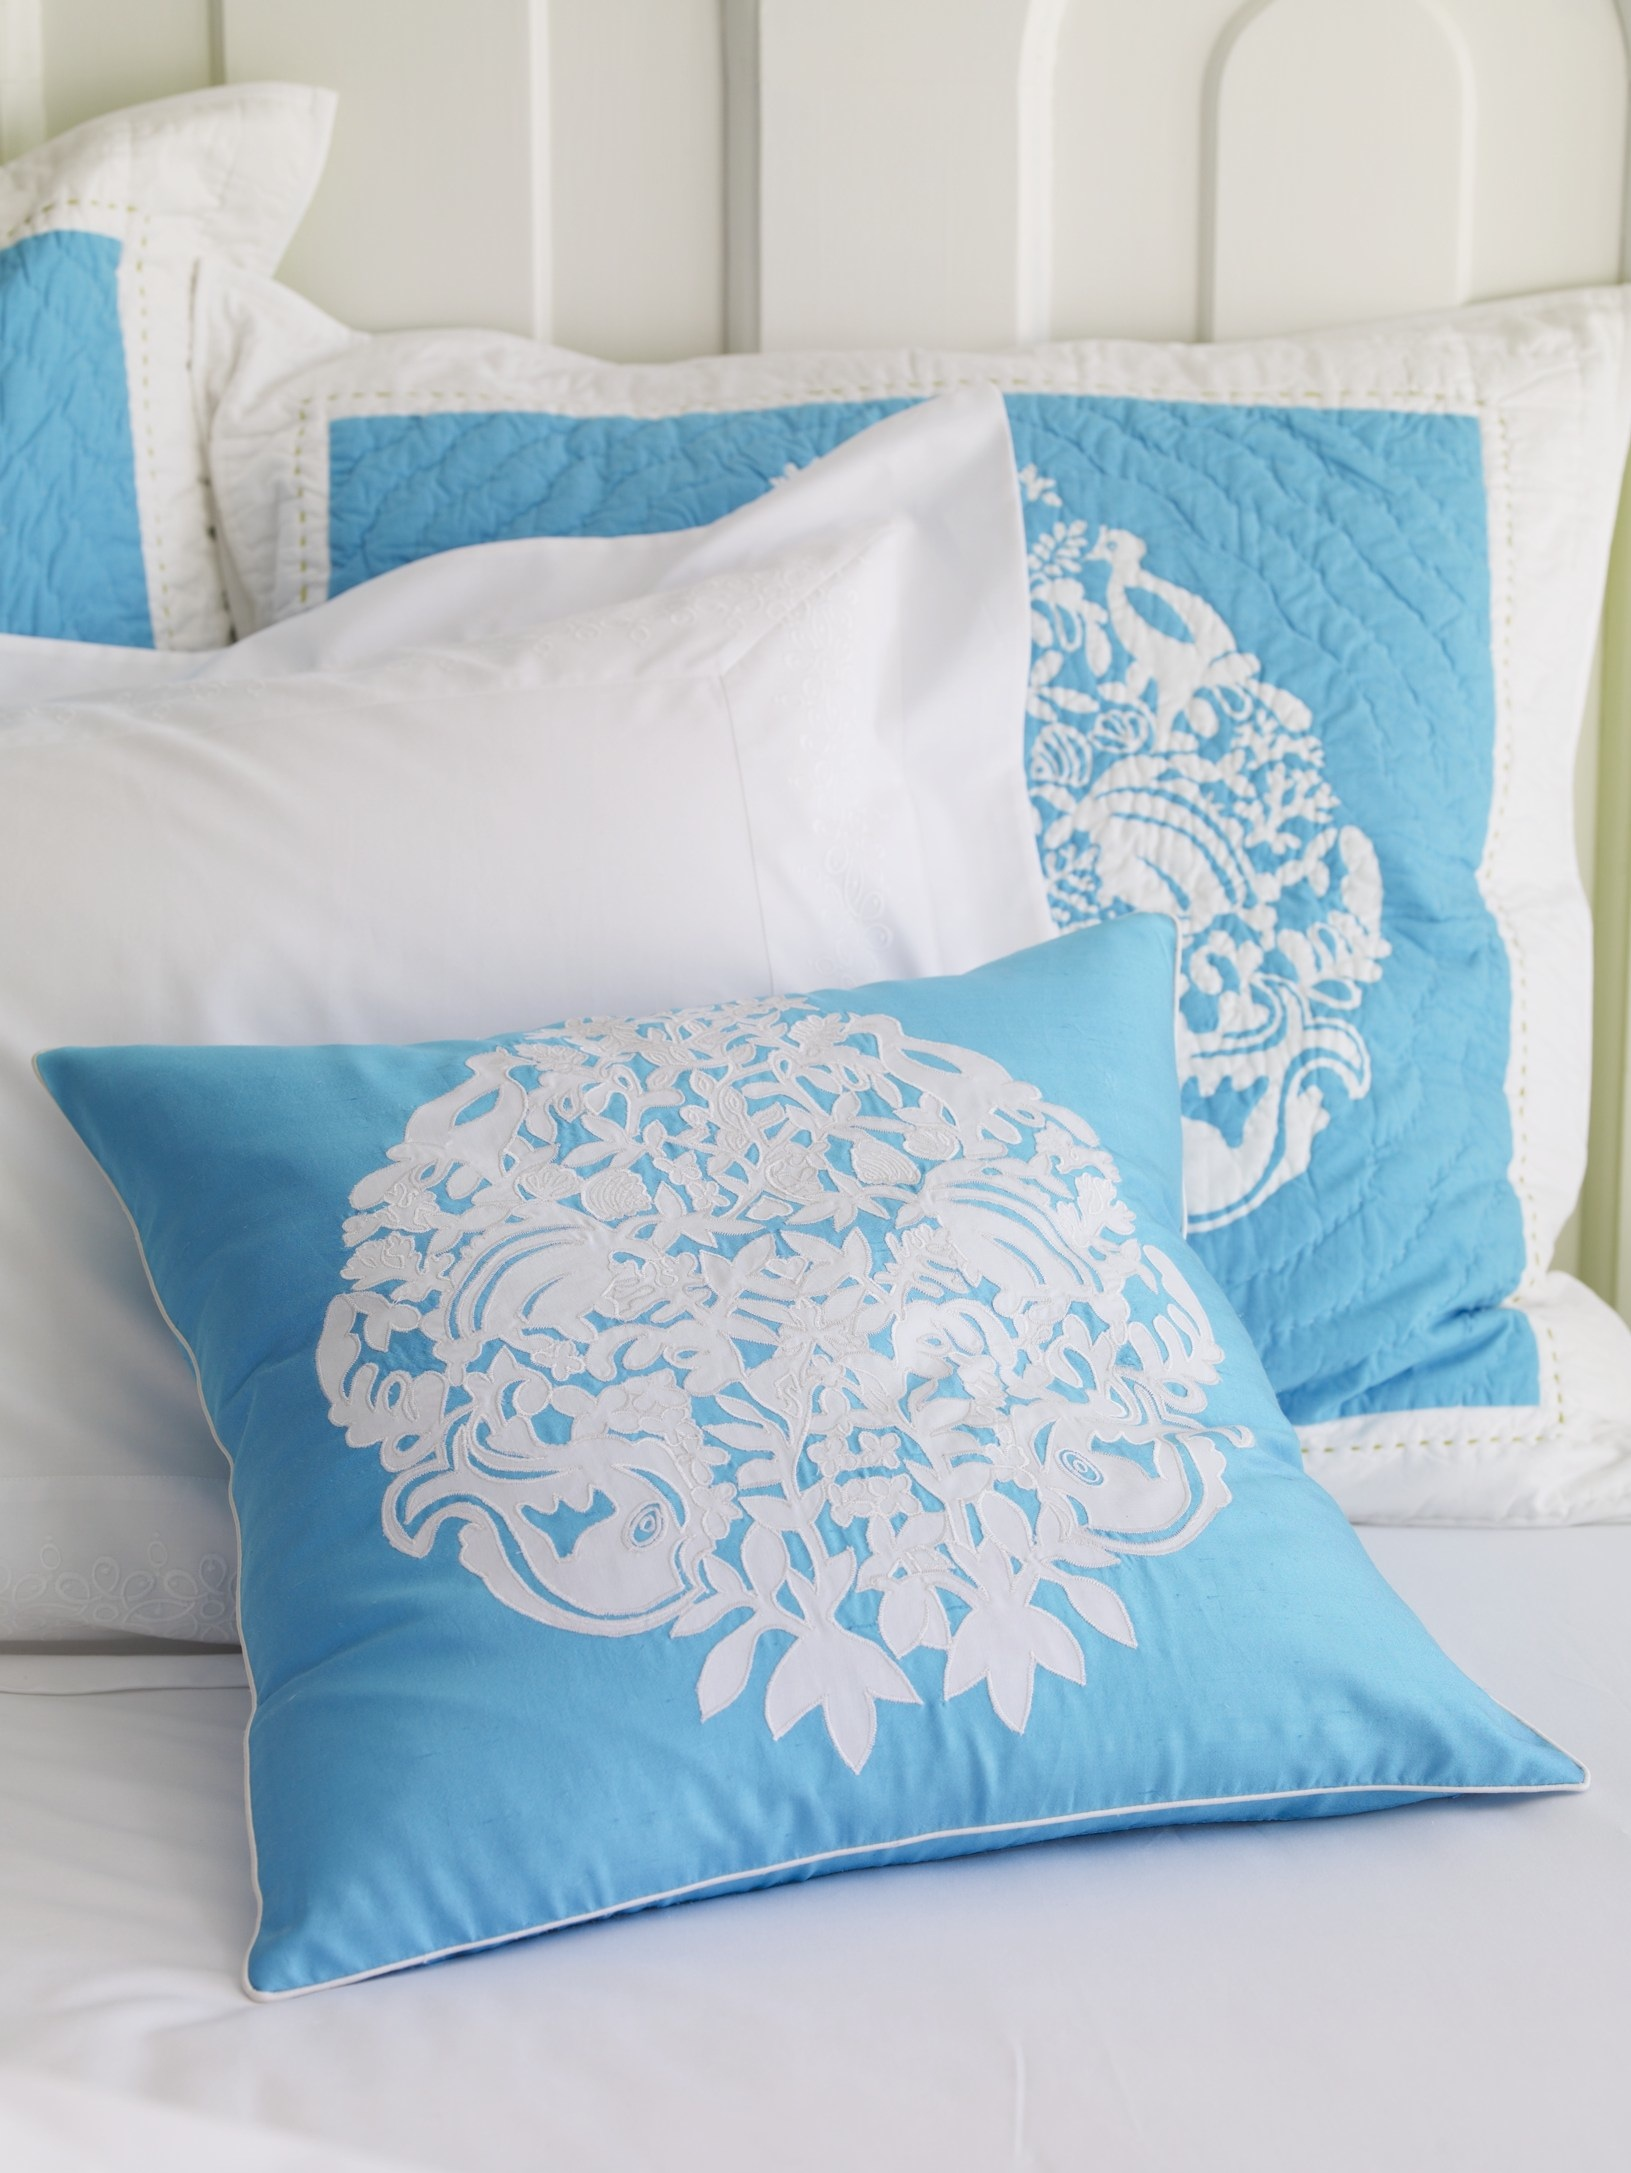 Lilly Pulitzer To Debut Bedding Line For Garnet Hill